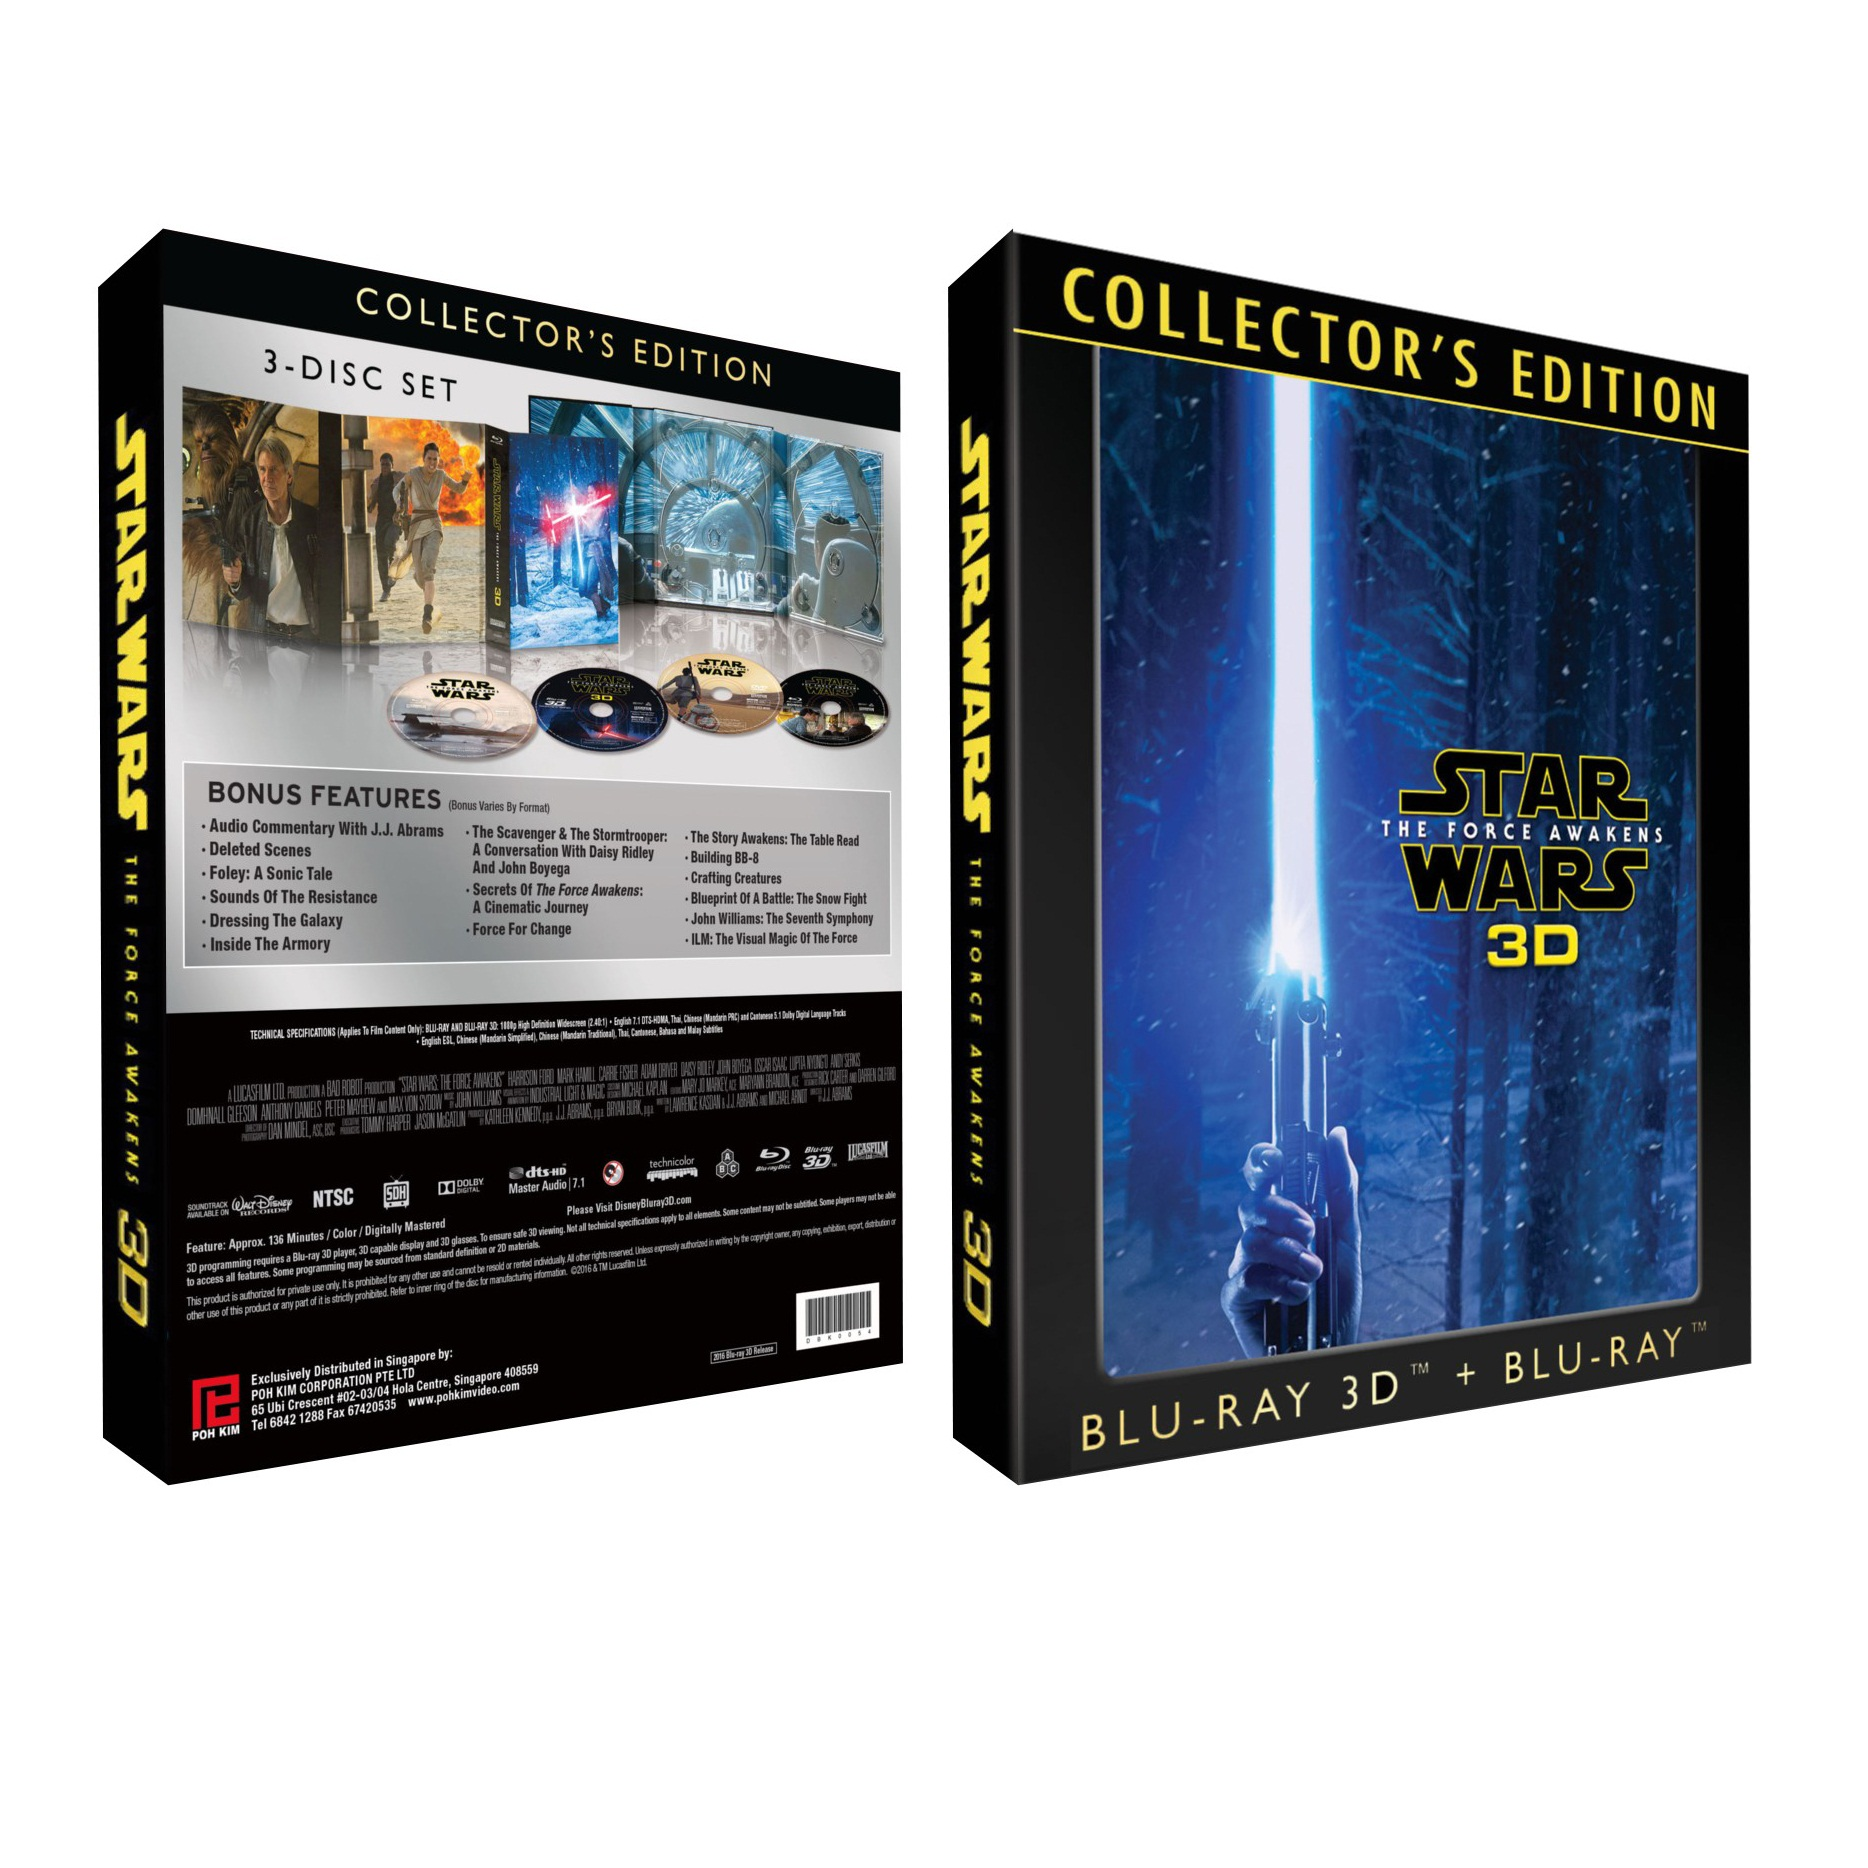 Star Wars: The Force Awakens (Collector's Edition 3-DISC SET: 2D + 3D  Blu-ray + Bonus Blu-ray)